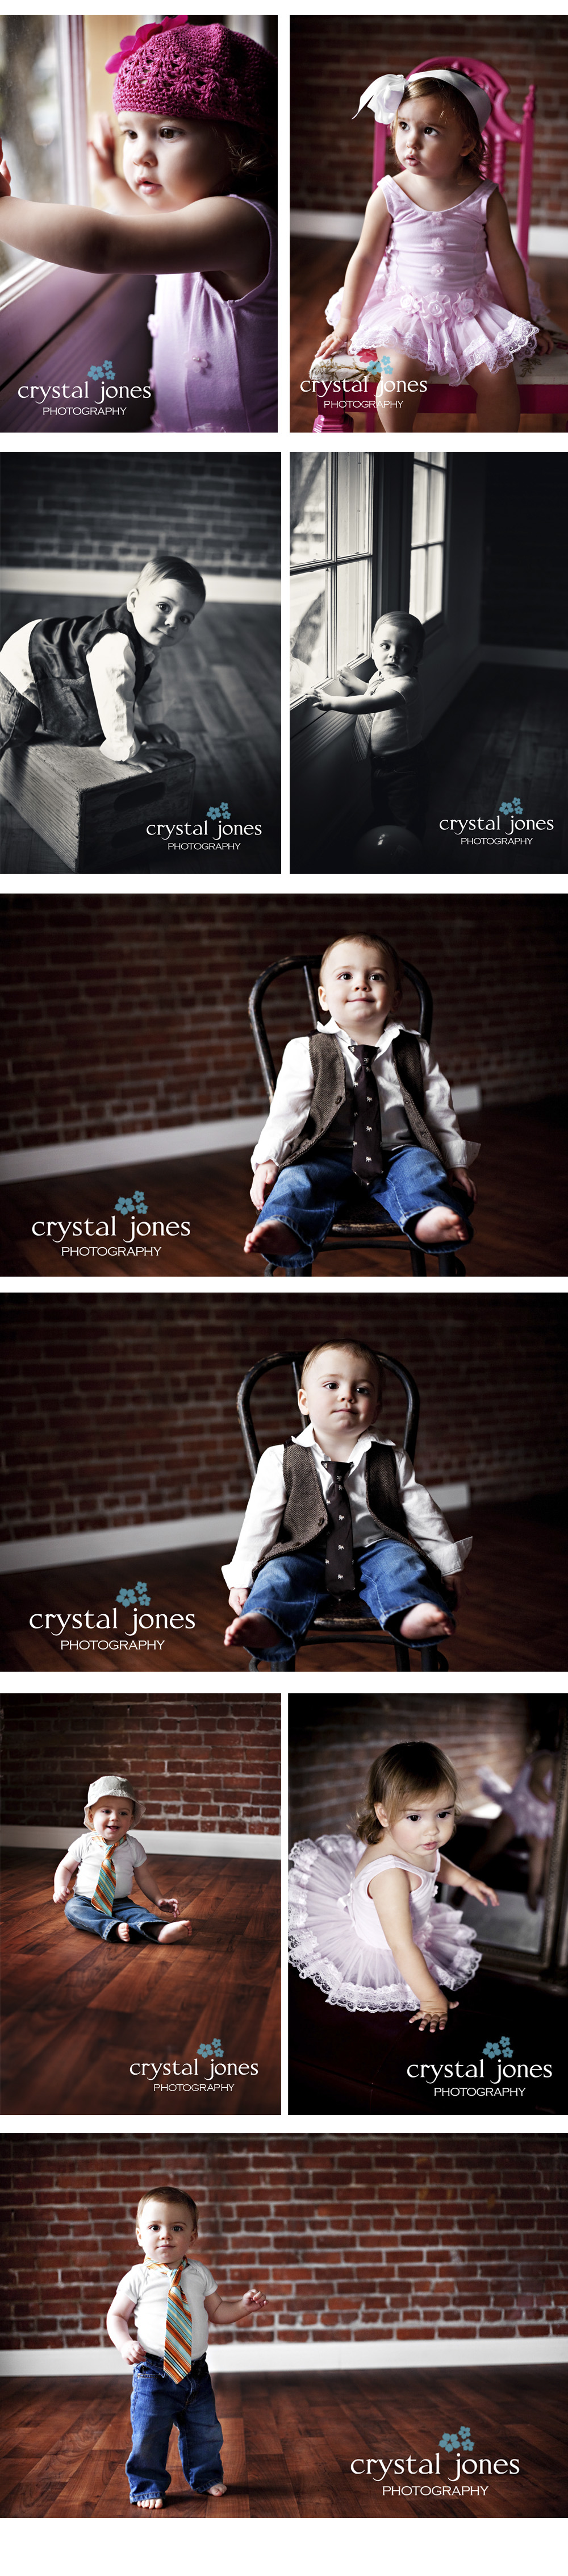 Special offer children's portraits mini sessions in roseville california